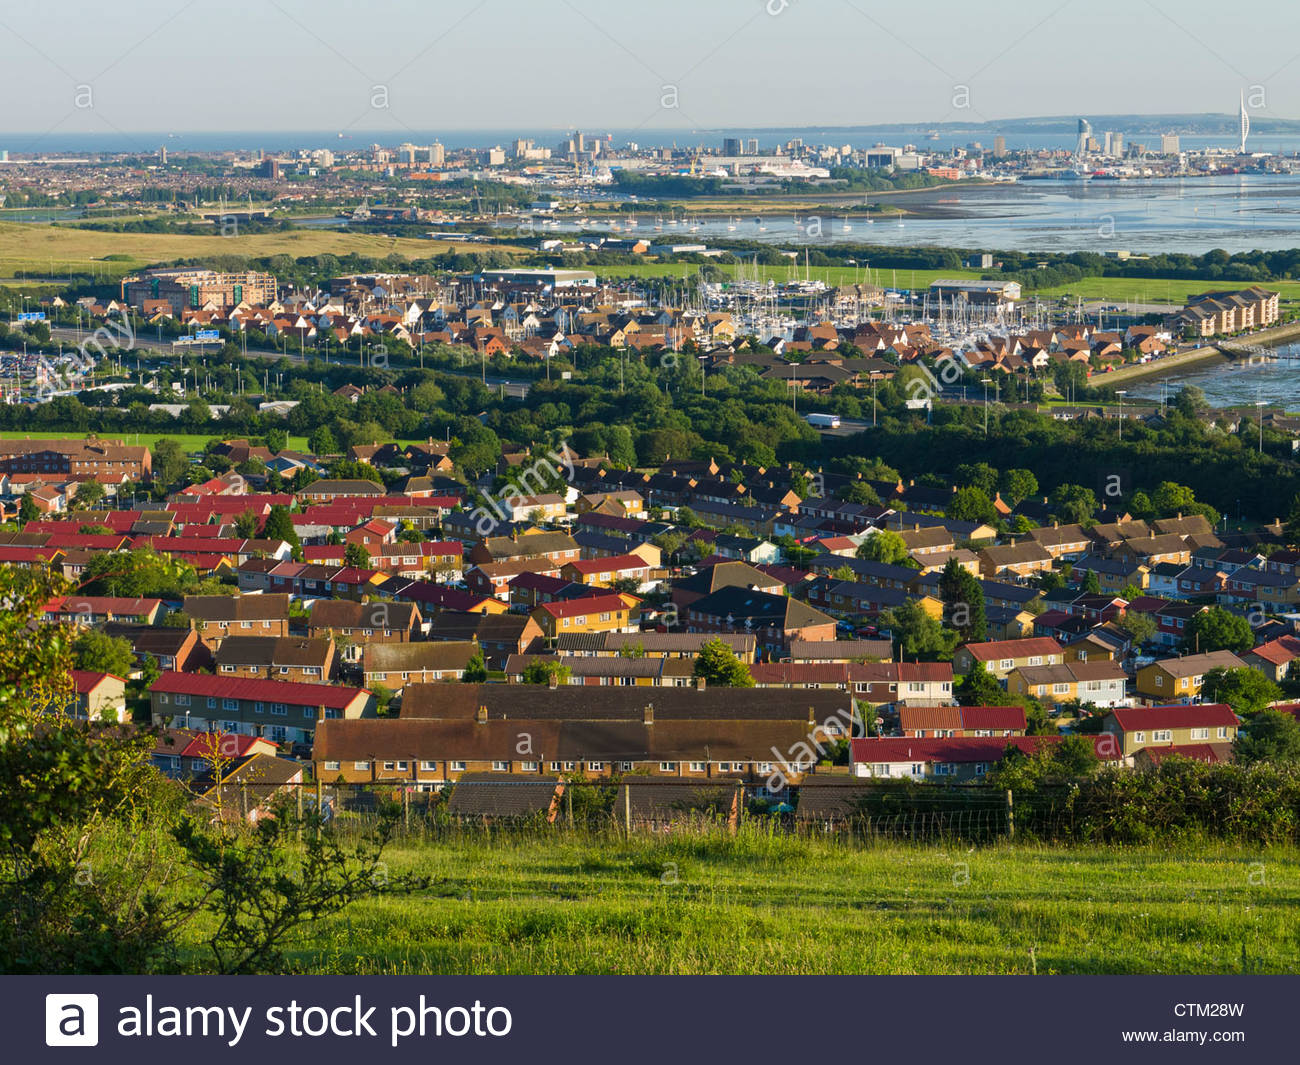 Portsmouth Urban Housing contrasts with Yacht Marina and City in Background - Stock Image